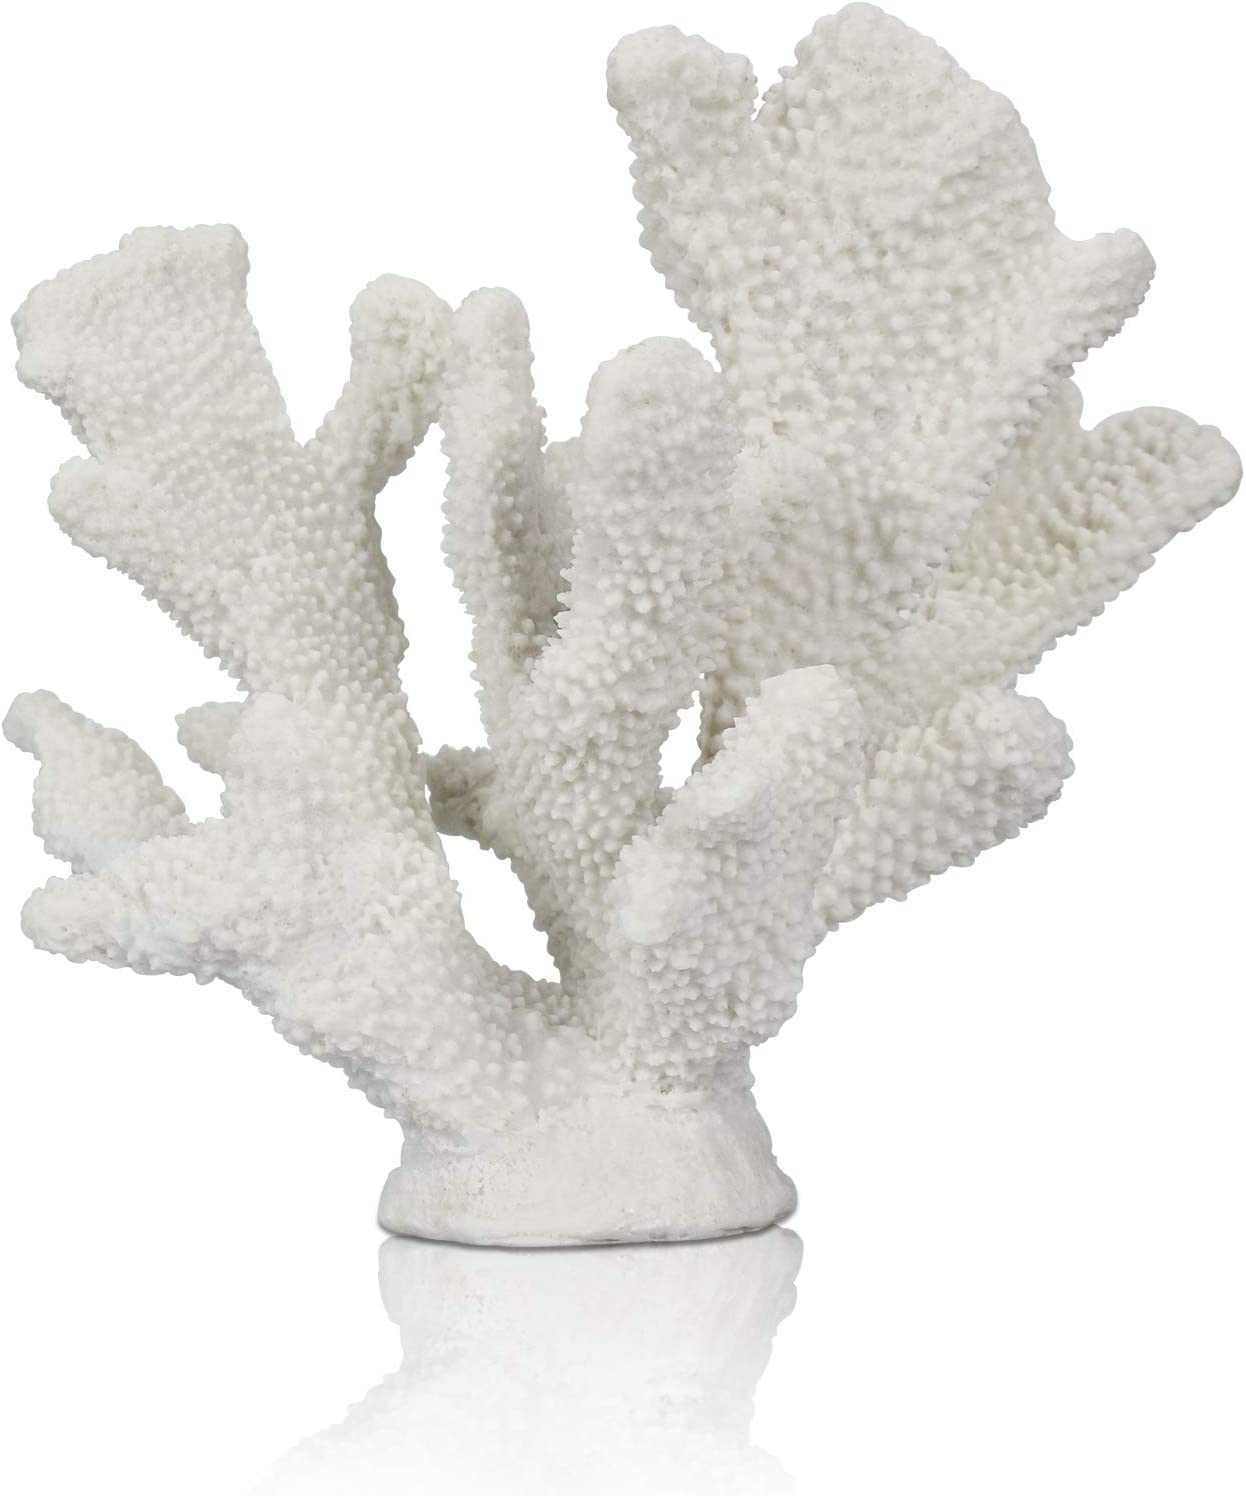 ALIWINER White Coral Statue Resin Coral Tabletop Decoration Home Living Room Decor (7.8in Tall)